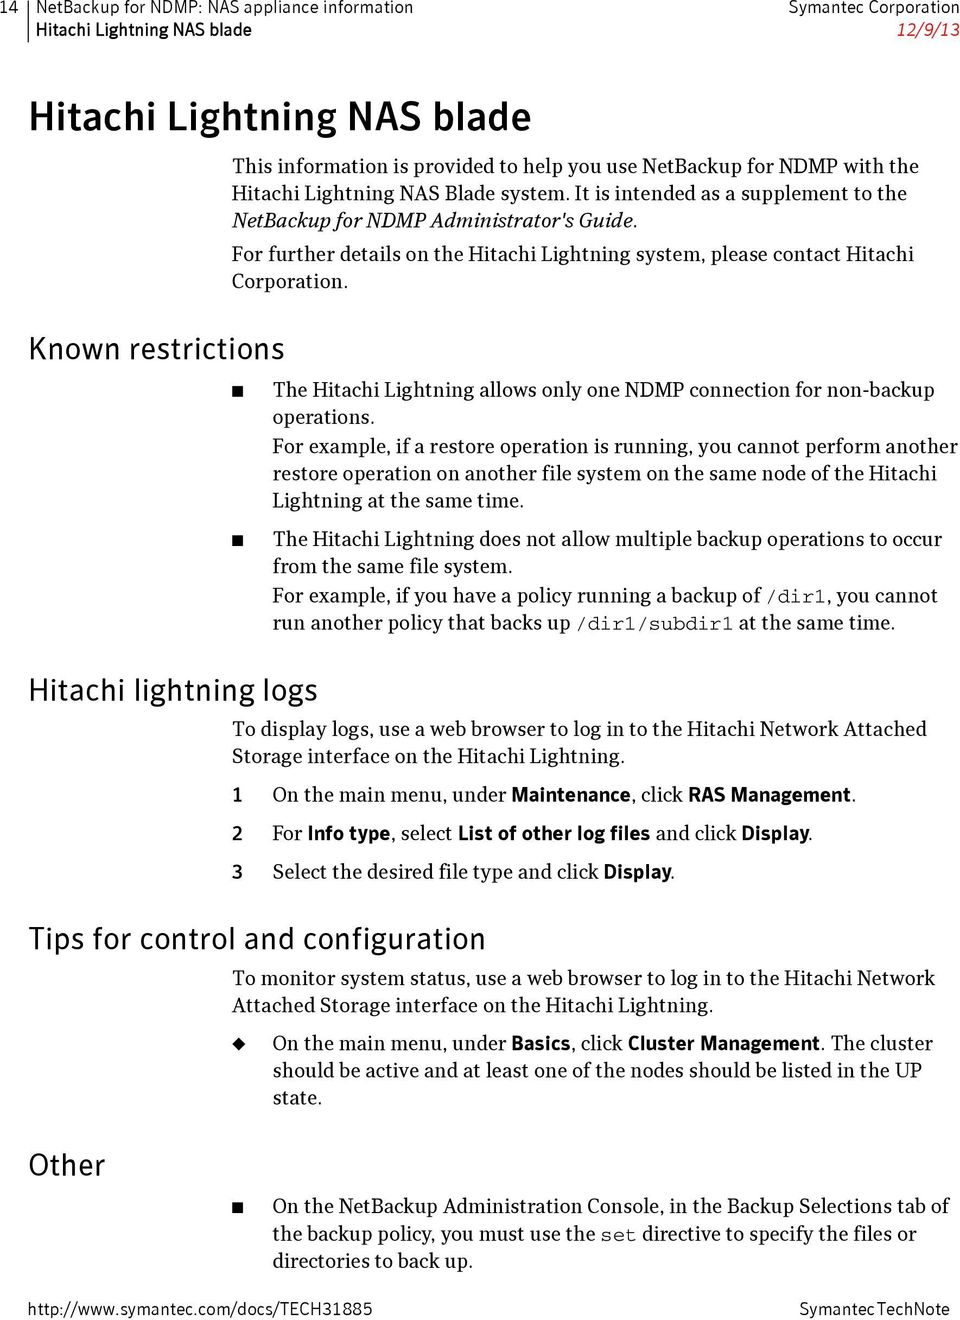 For further details on the Hitachi Lightning system, please contact Hitachi Corporation. The Hitachi Lightning allows only one NDMP connection for non-backup operations.